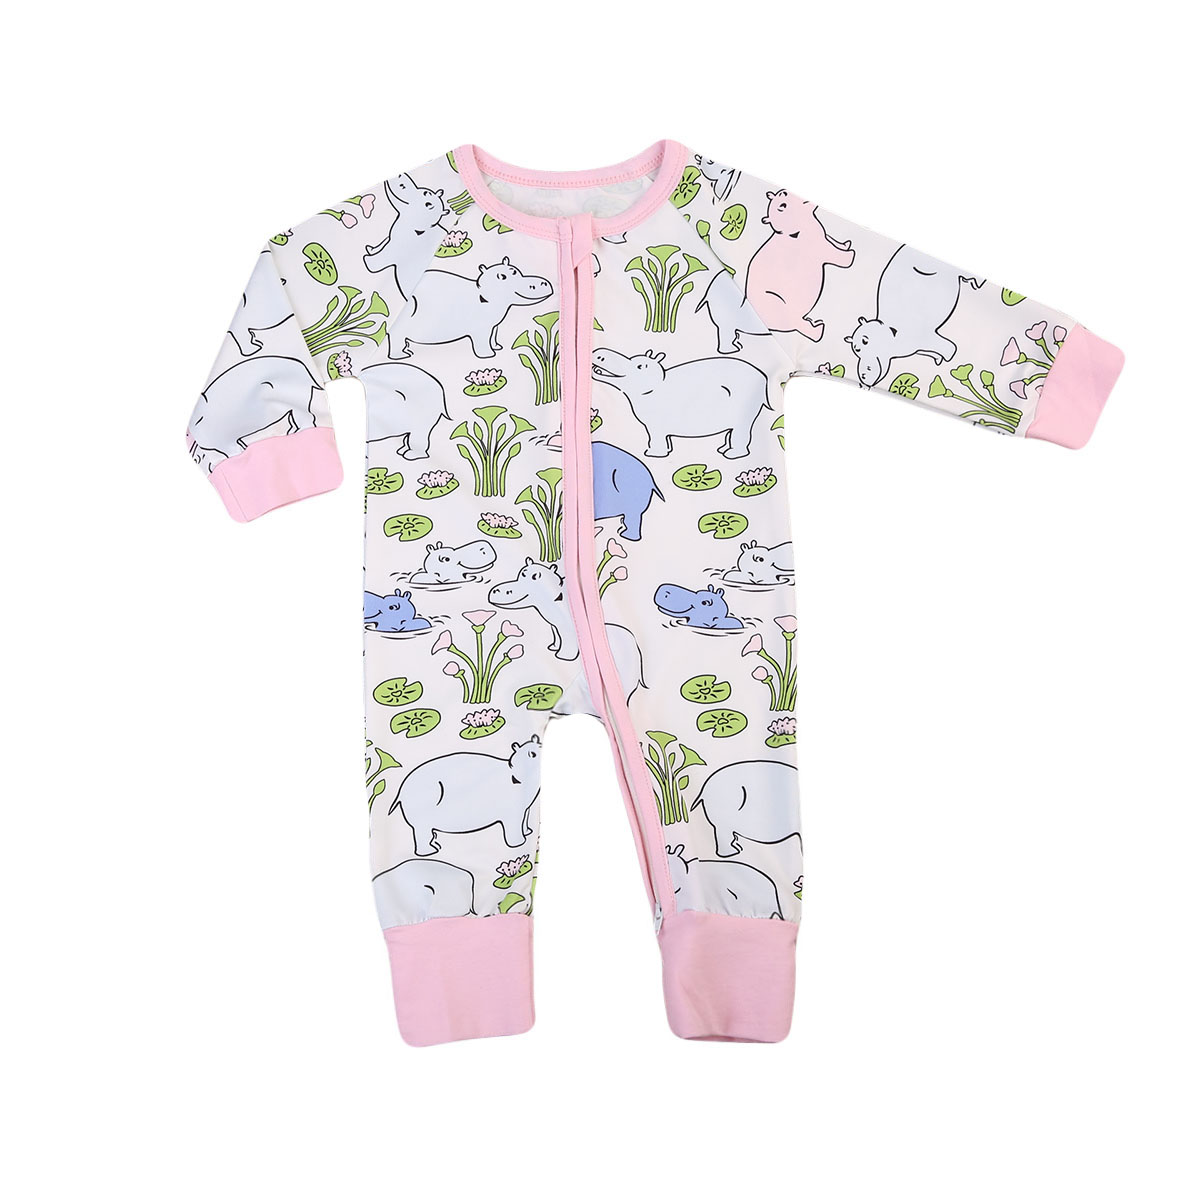 Newborn Infant Baby Girls Kids Cotton   Romper   Jumpsuit Clothes Outfit Long Sleeve   Rompers